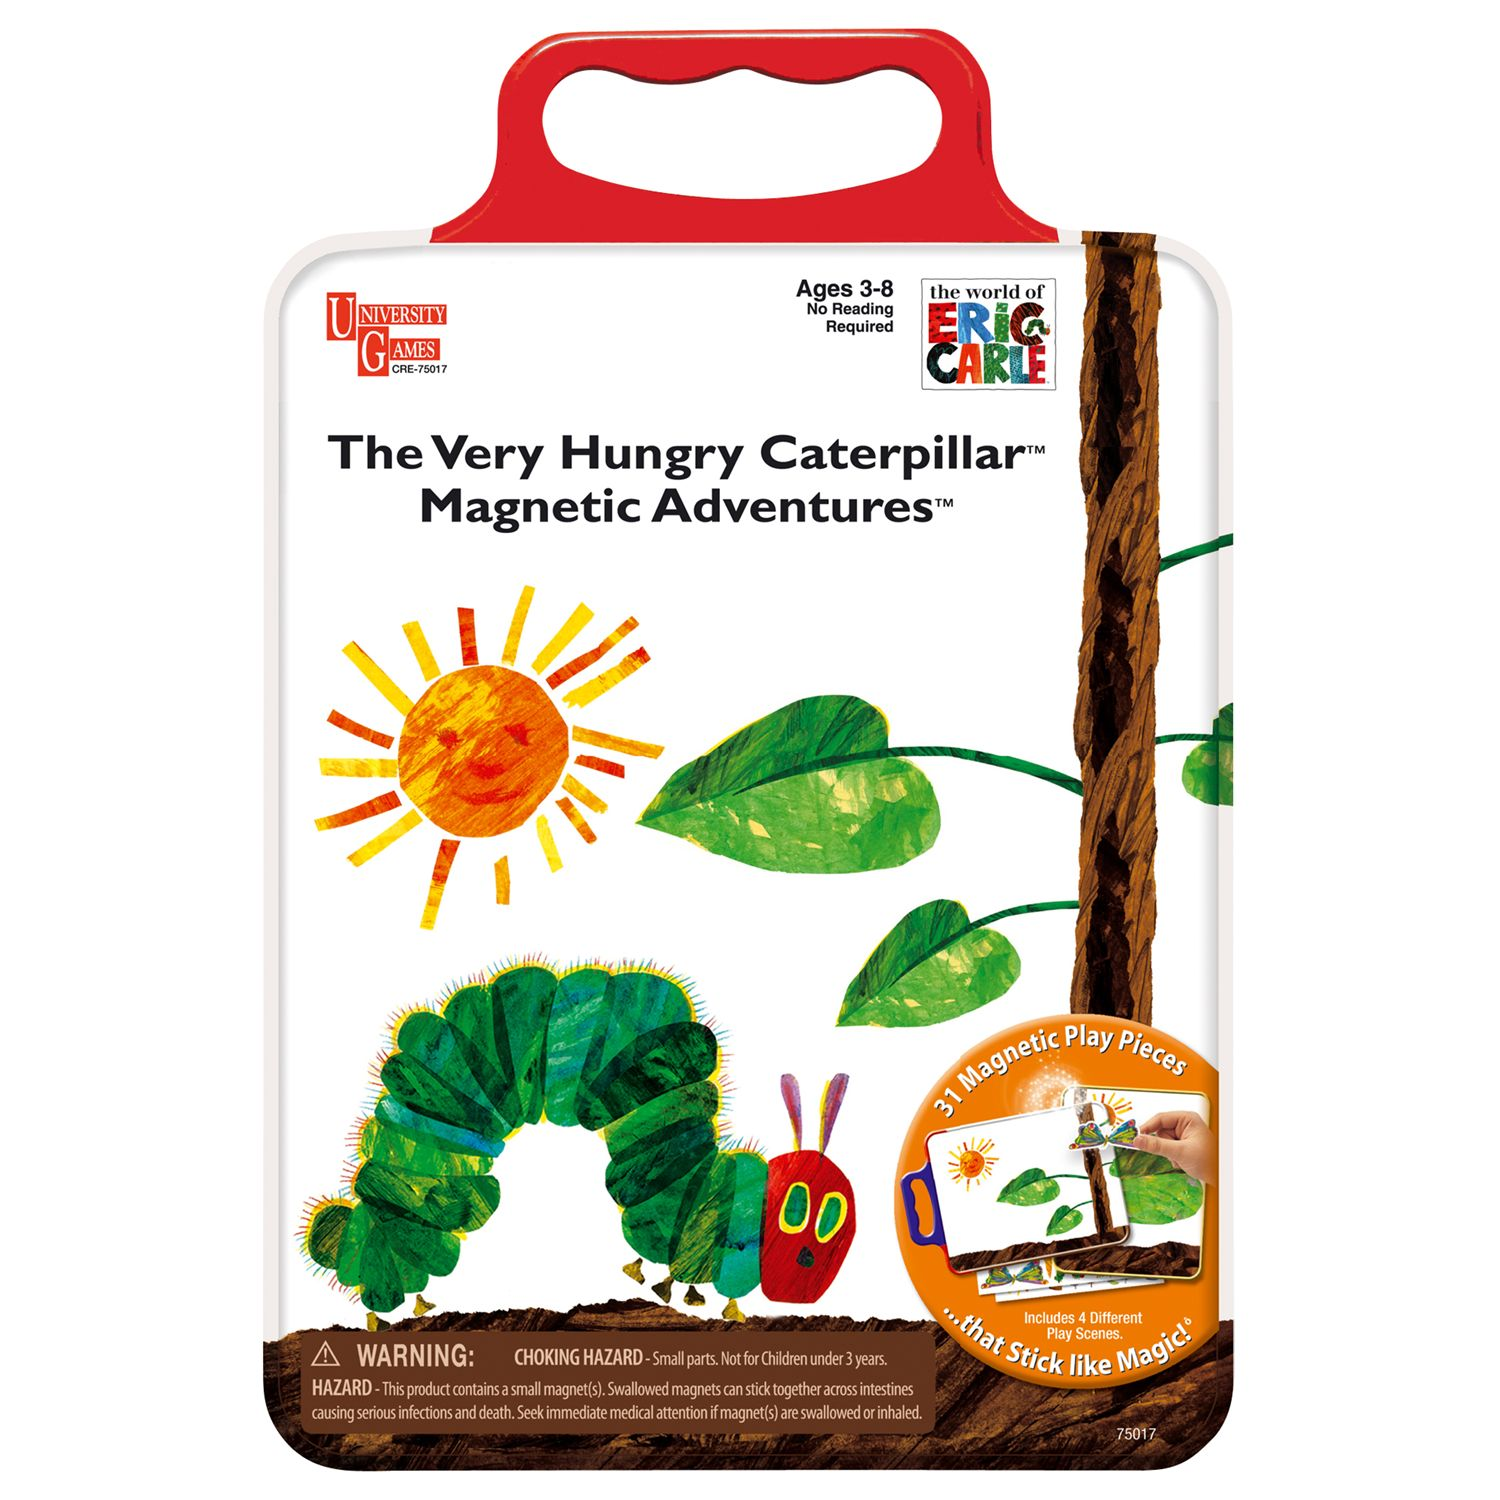 The Very Hungry Caterpillar Magnetic Adventures